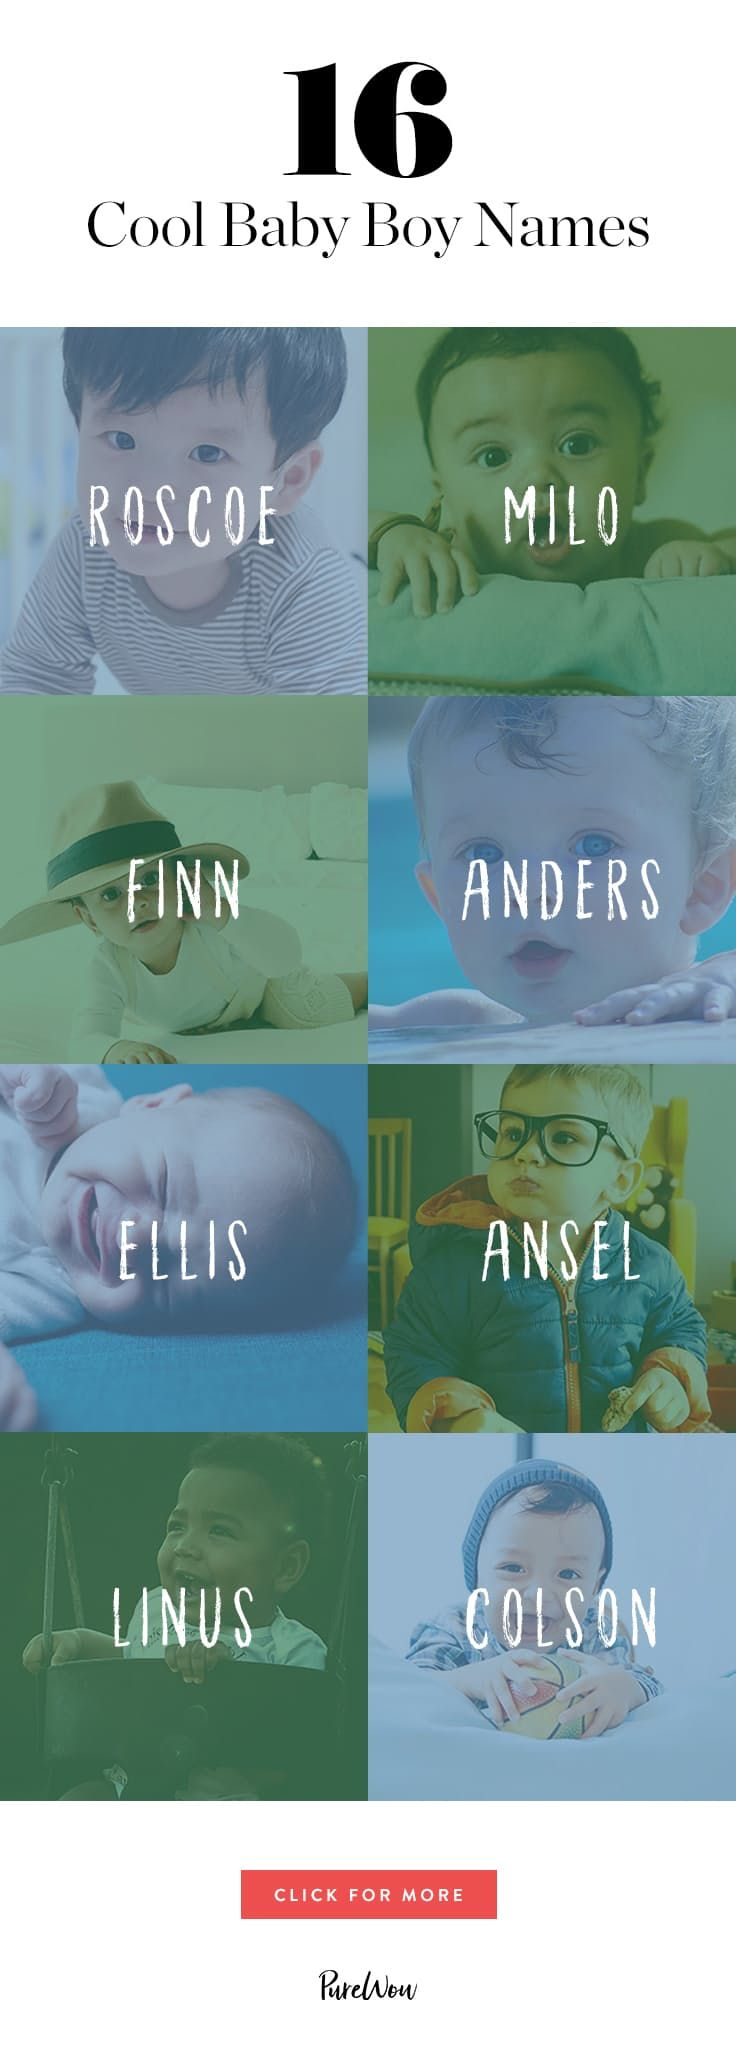 Ansel! 16 Cool Baby Boy Names You Haven't Thought Of via @PureWow